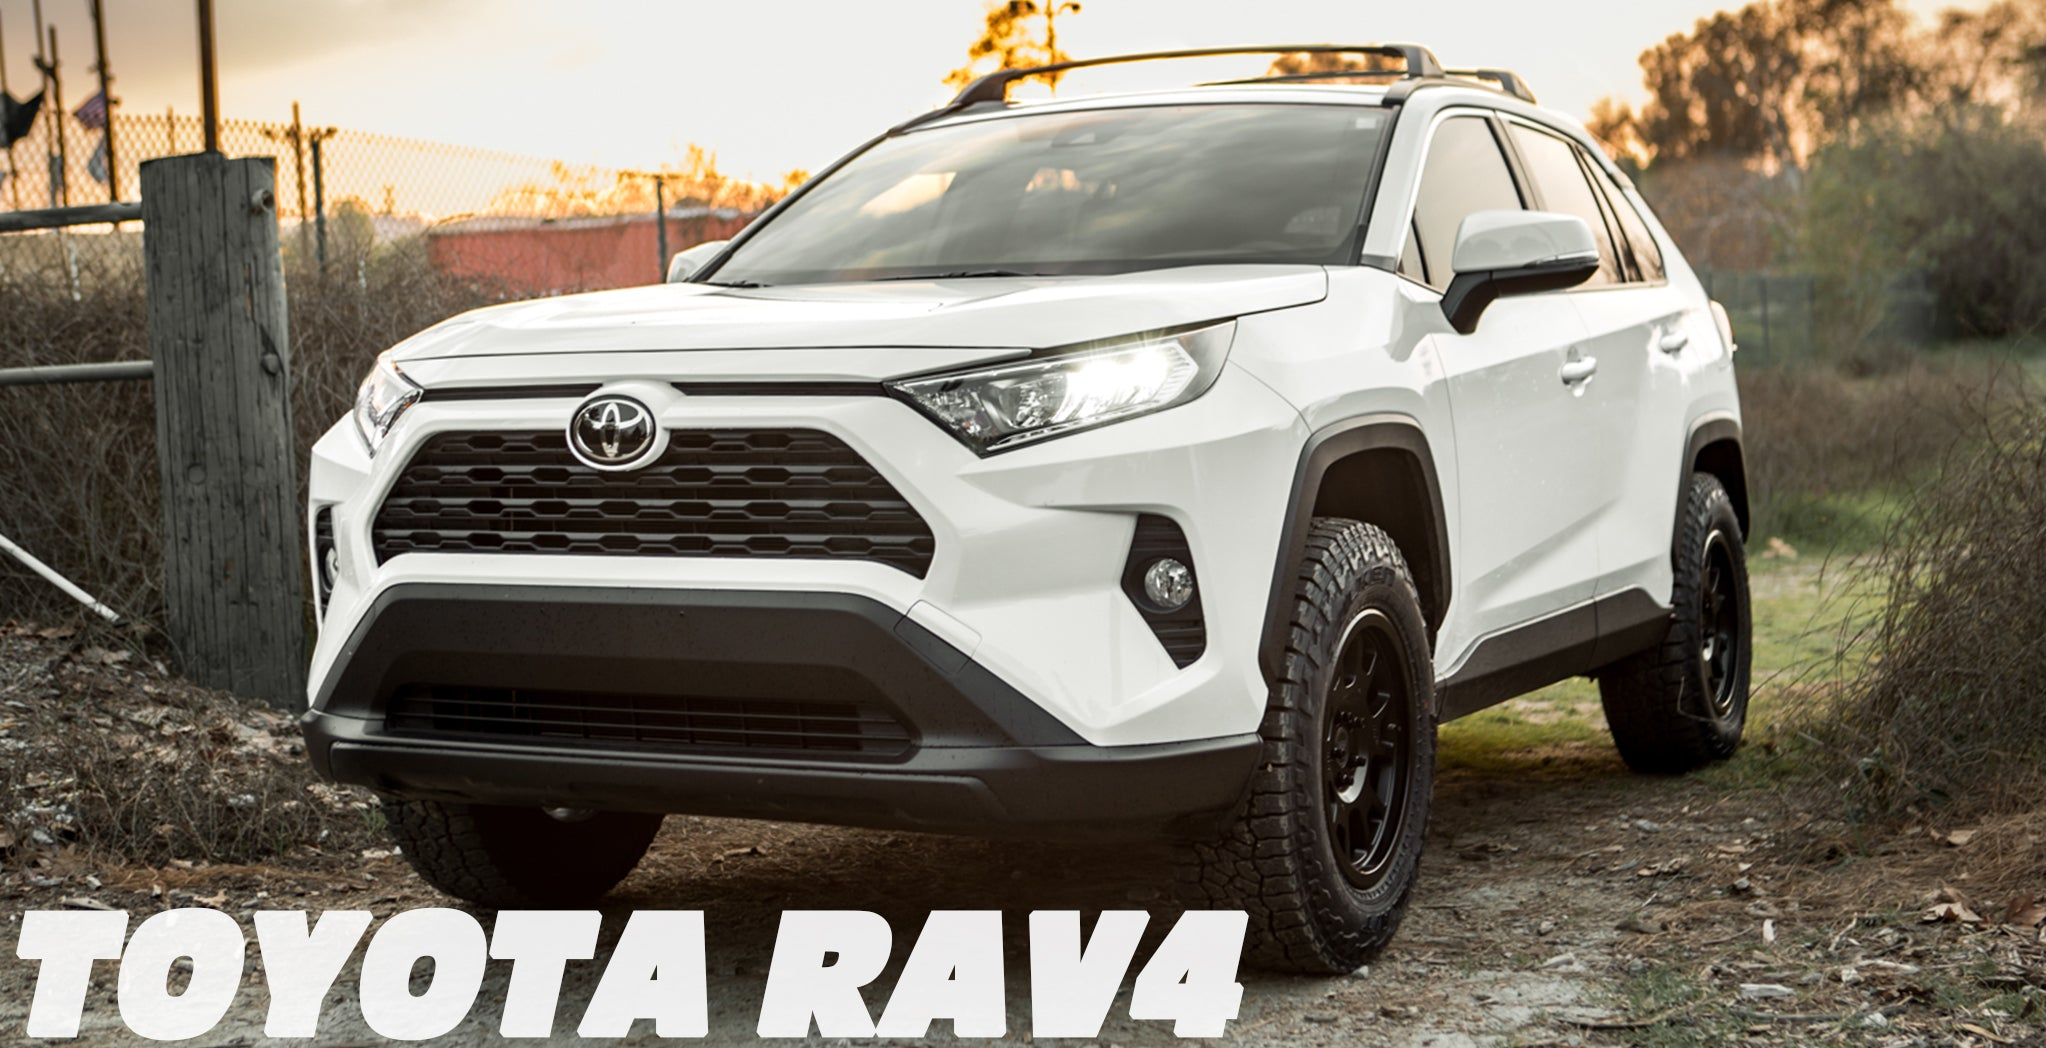 Toyota Rav4 Offroad Wheels And Accessories Rrw Tagged Jeep Wrangler Relations Race Wheels